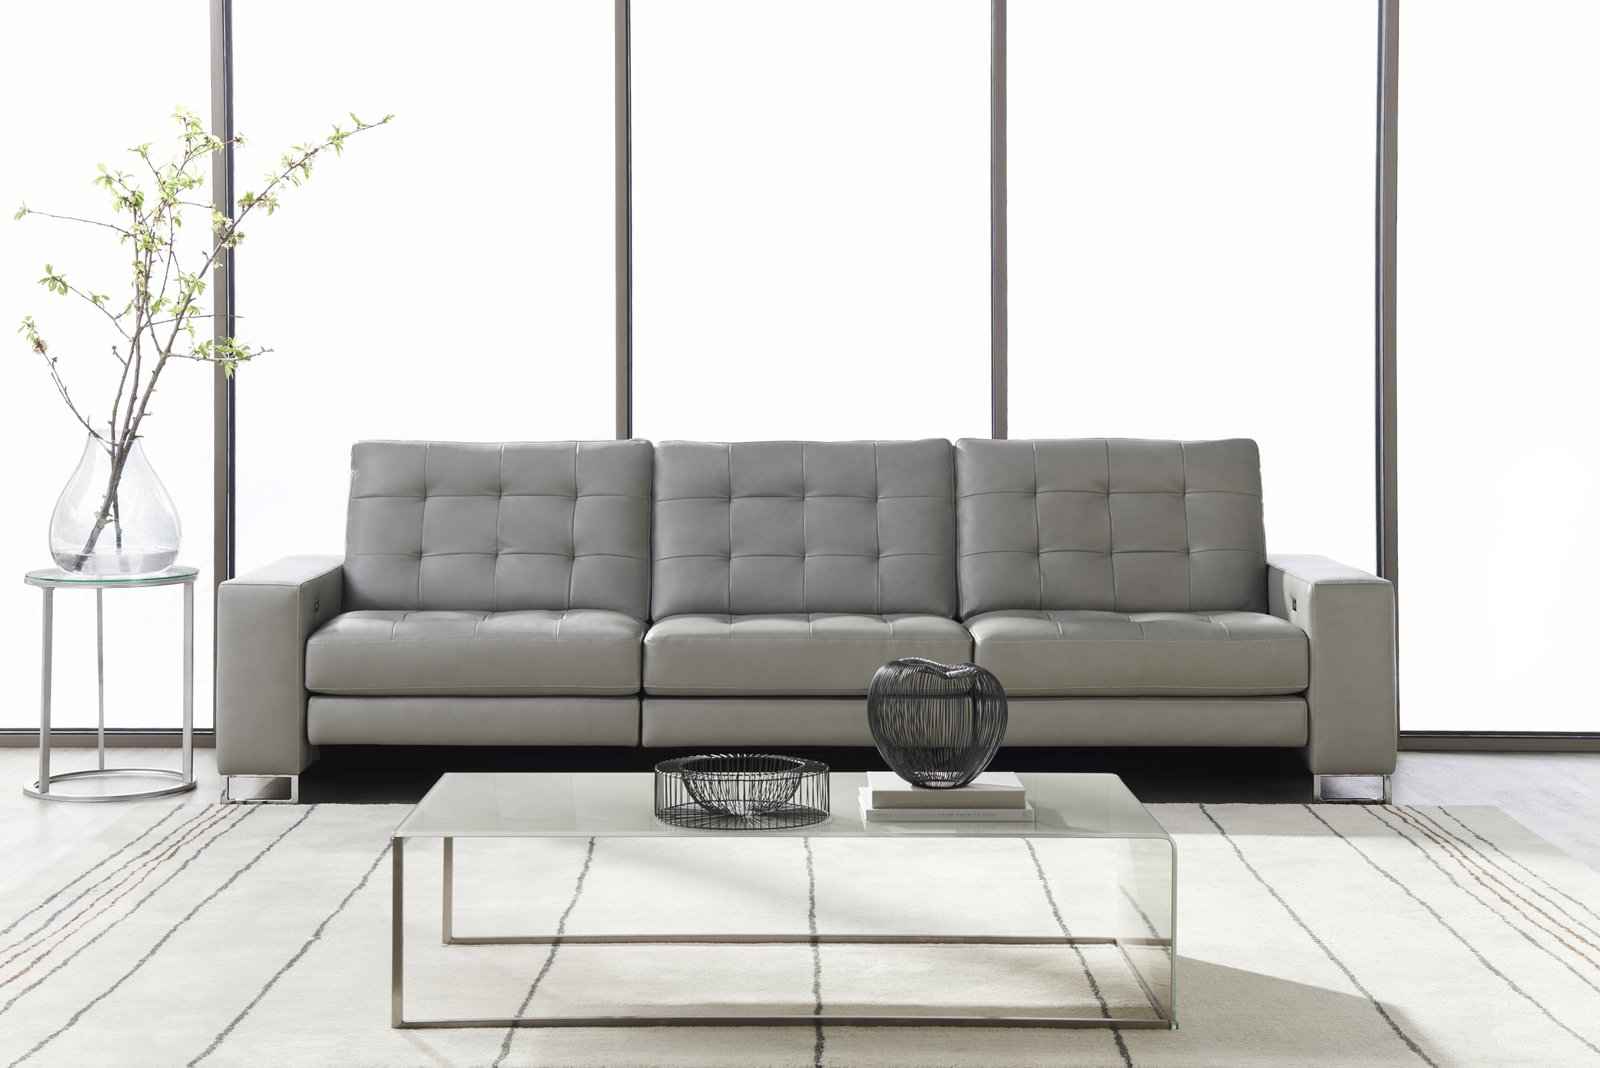 HUDSON - Buttonless tufting and polished chrome legs give Hudson a refined, sophisticated look.  STYLE IN MOTION®